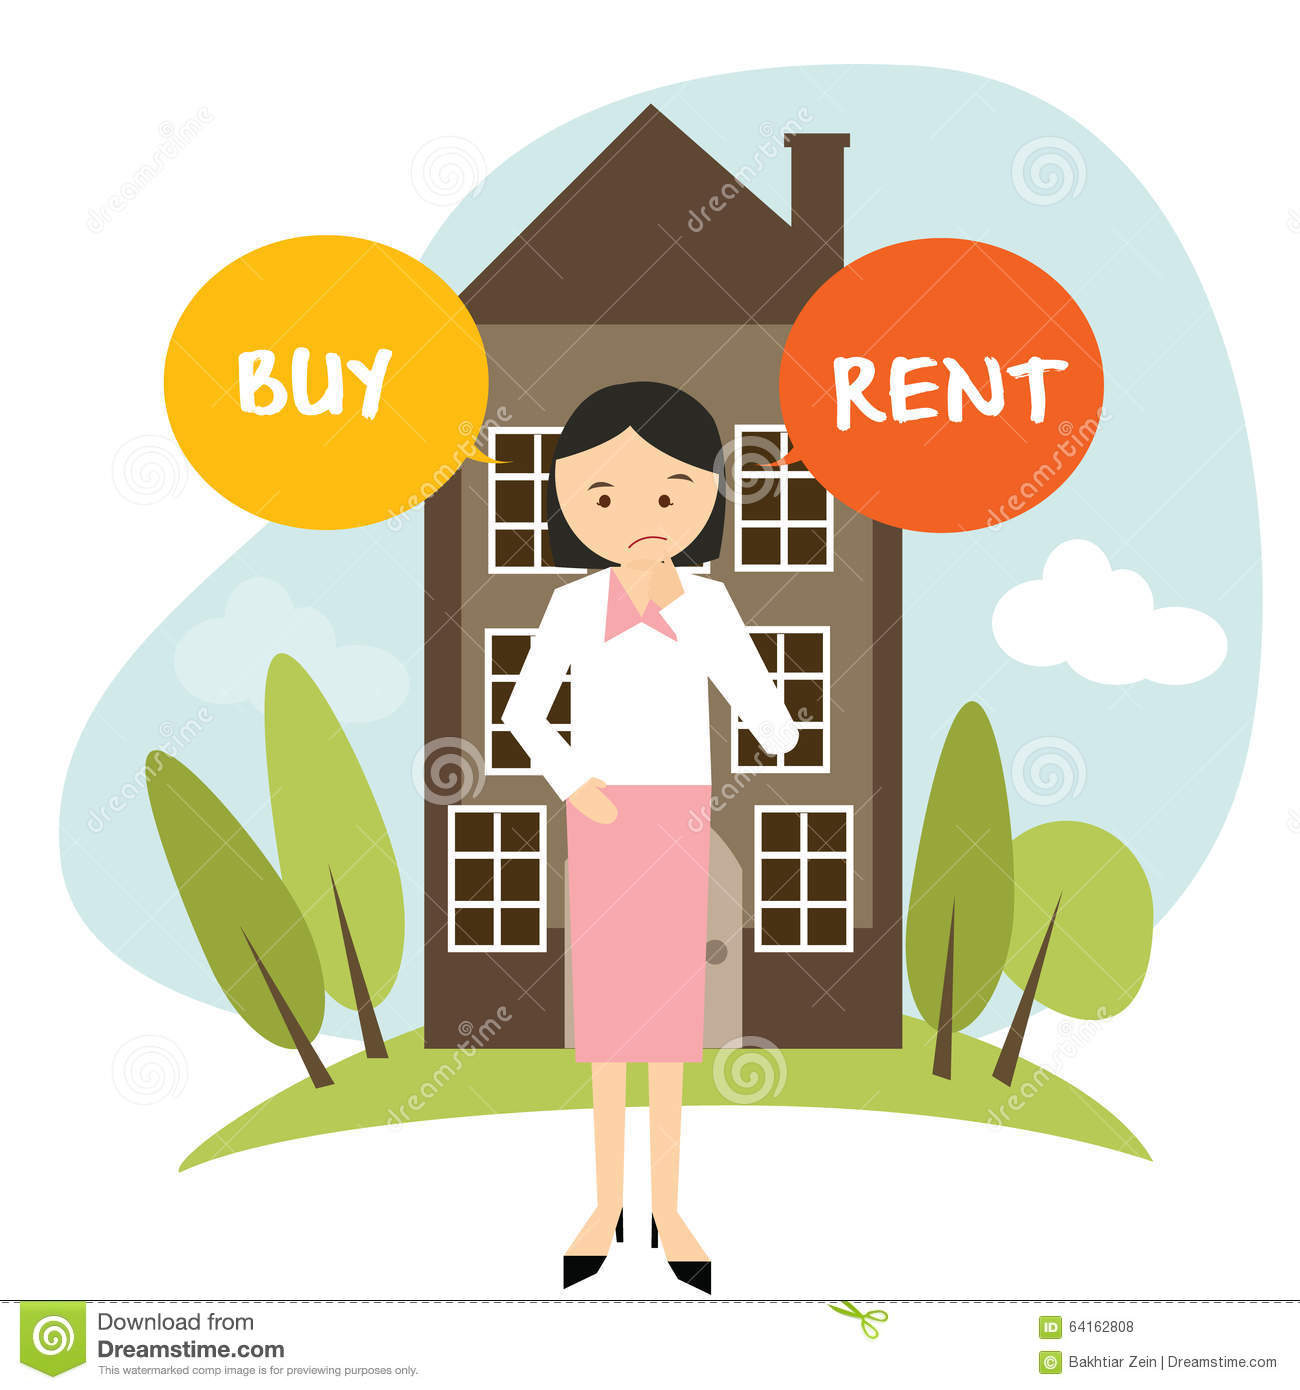 Rent An Apartment Or House: Buy Or Rent House Home Apartment Woman Decide Vector